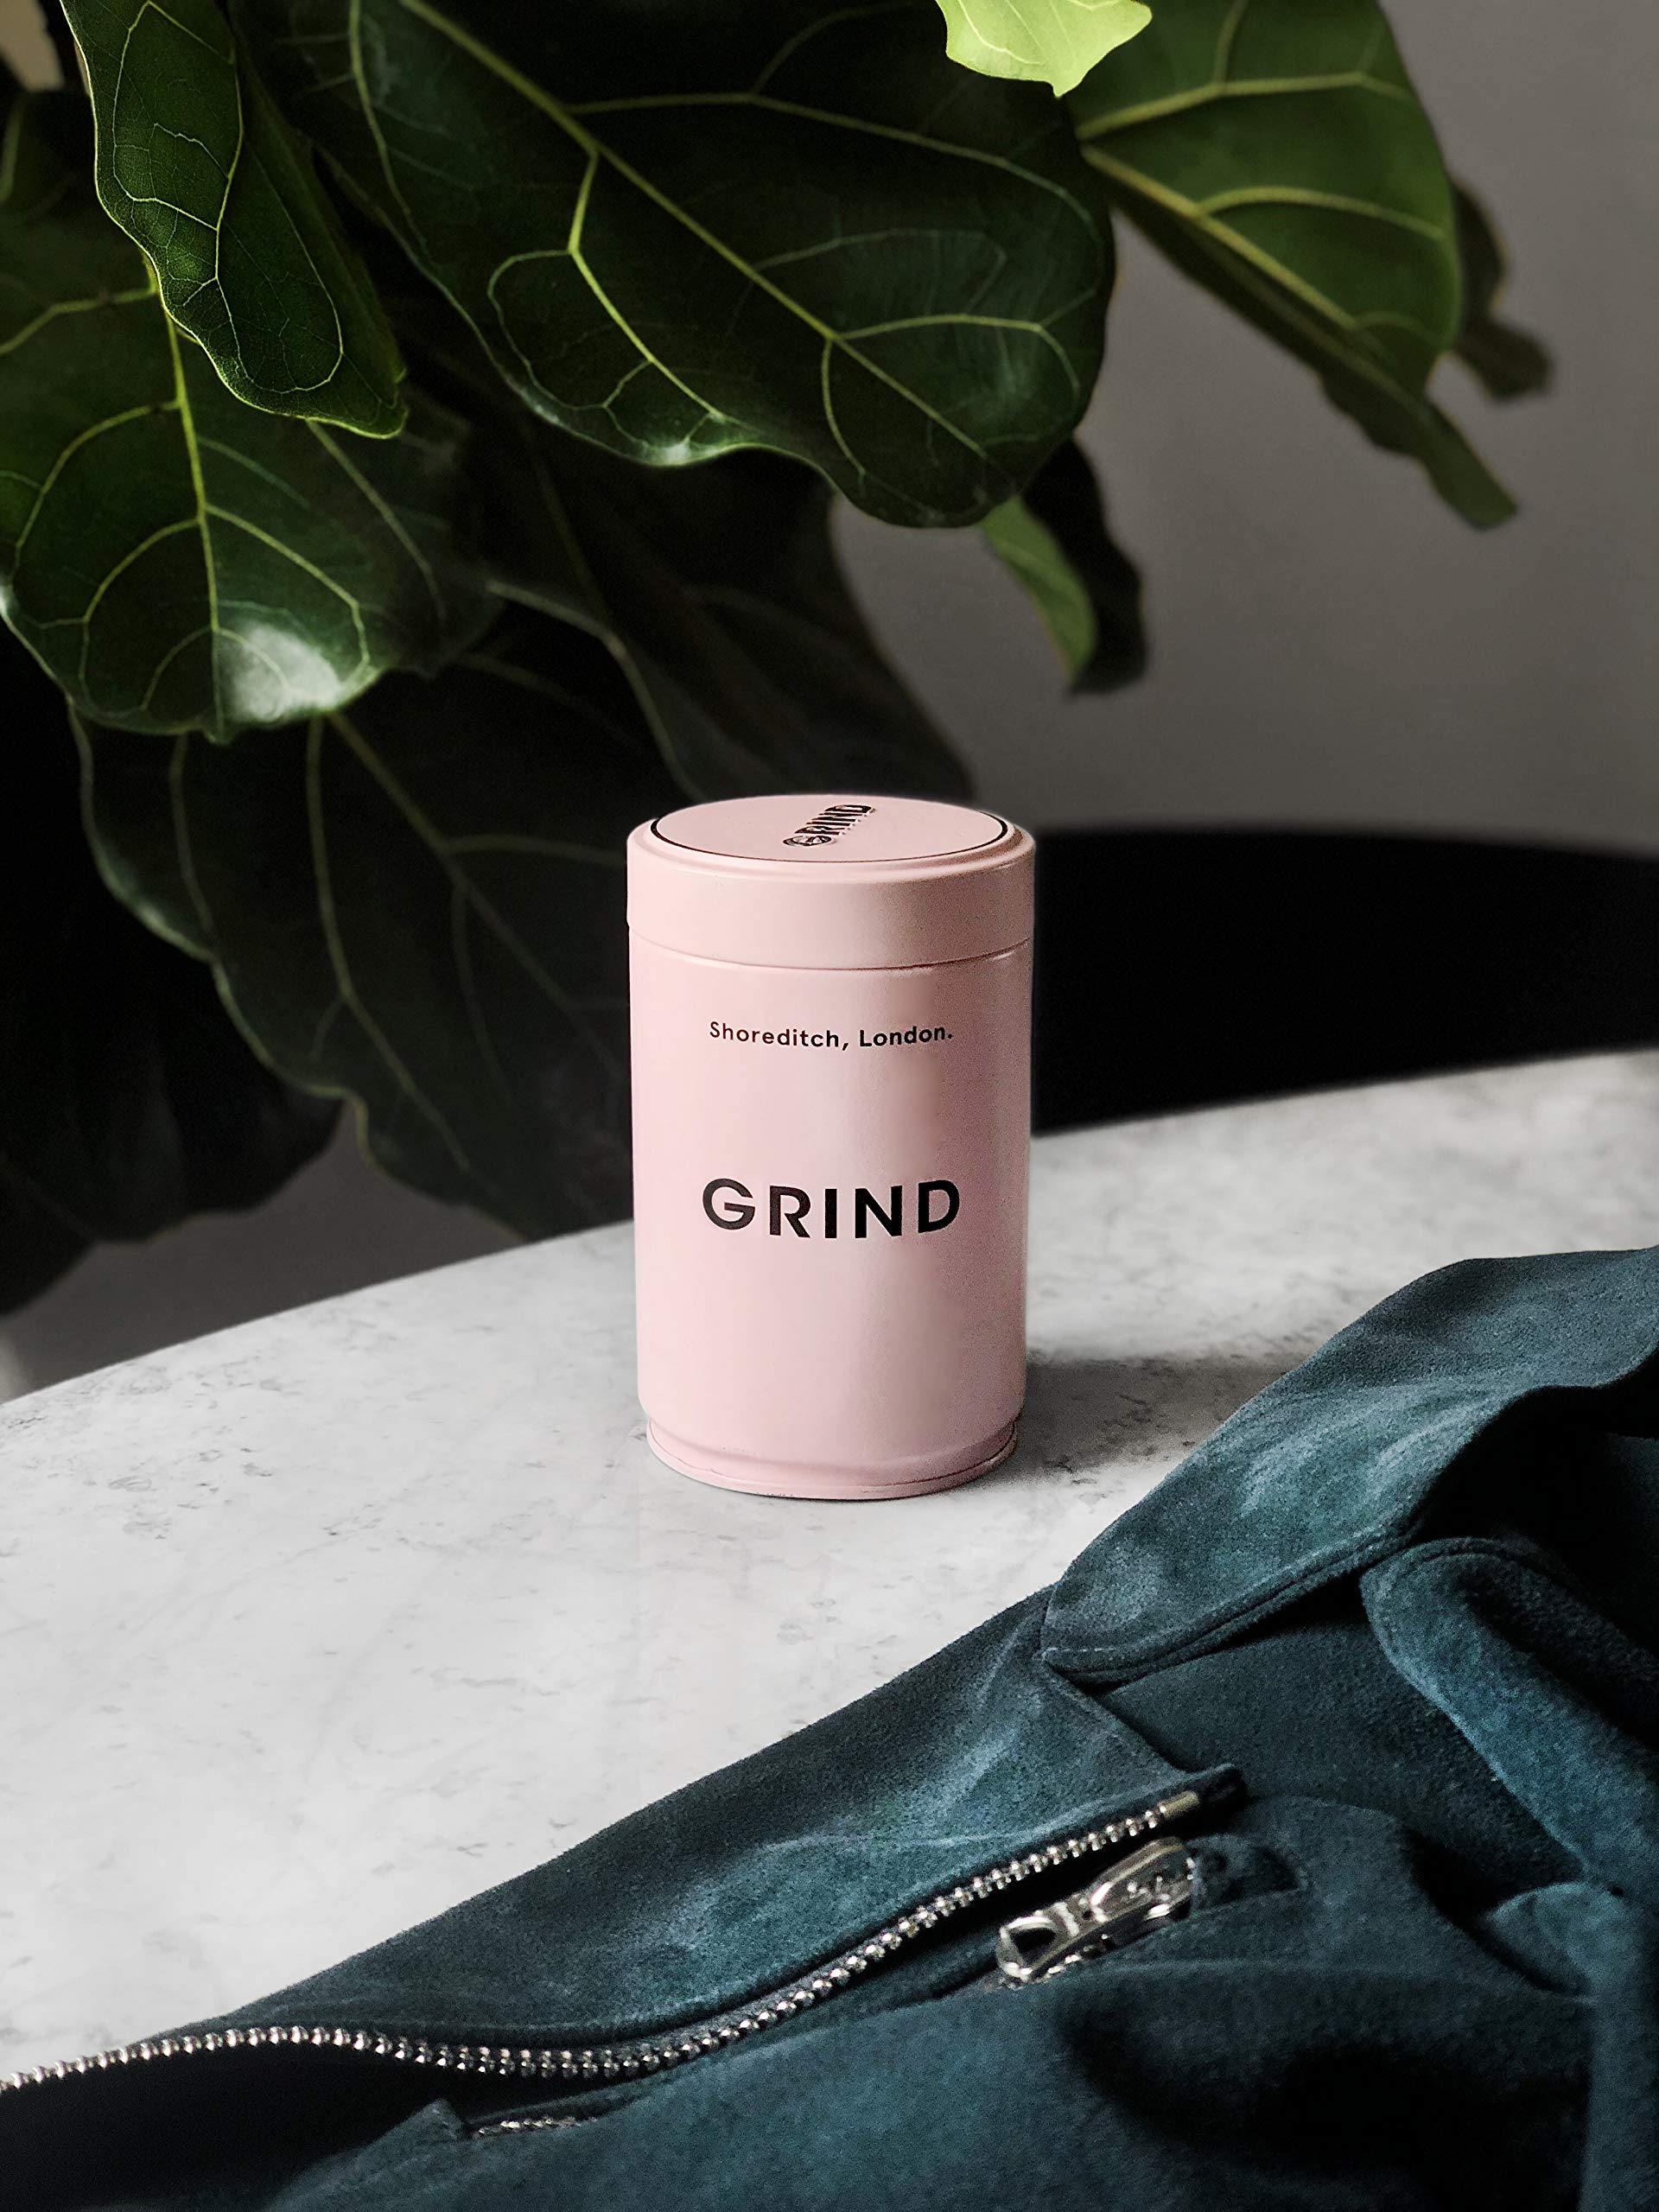 Grind – Ground Coffee | Suitable for Aeropress, Cafetiere, Filter Or Moka Machines | for Coffee with Milk | with Notes of Chocolate, Hazelnut and Cream | House Blend – 227g